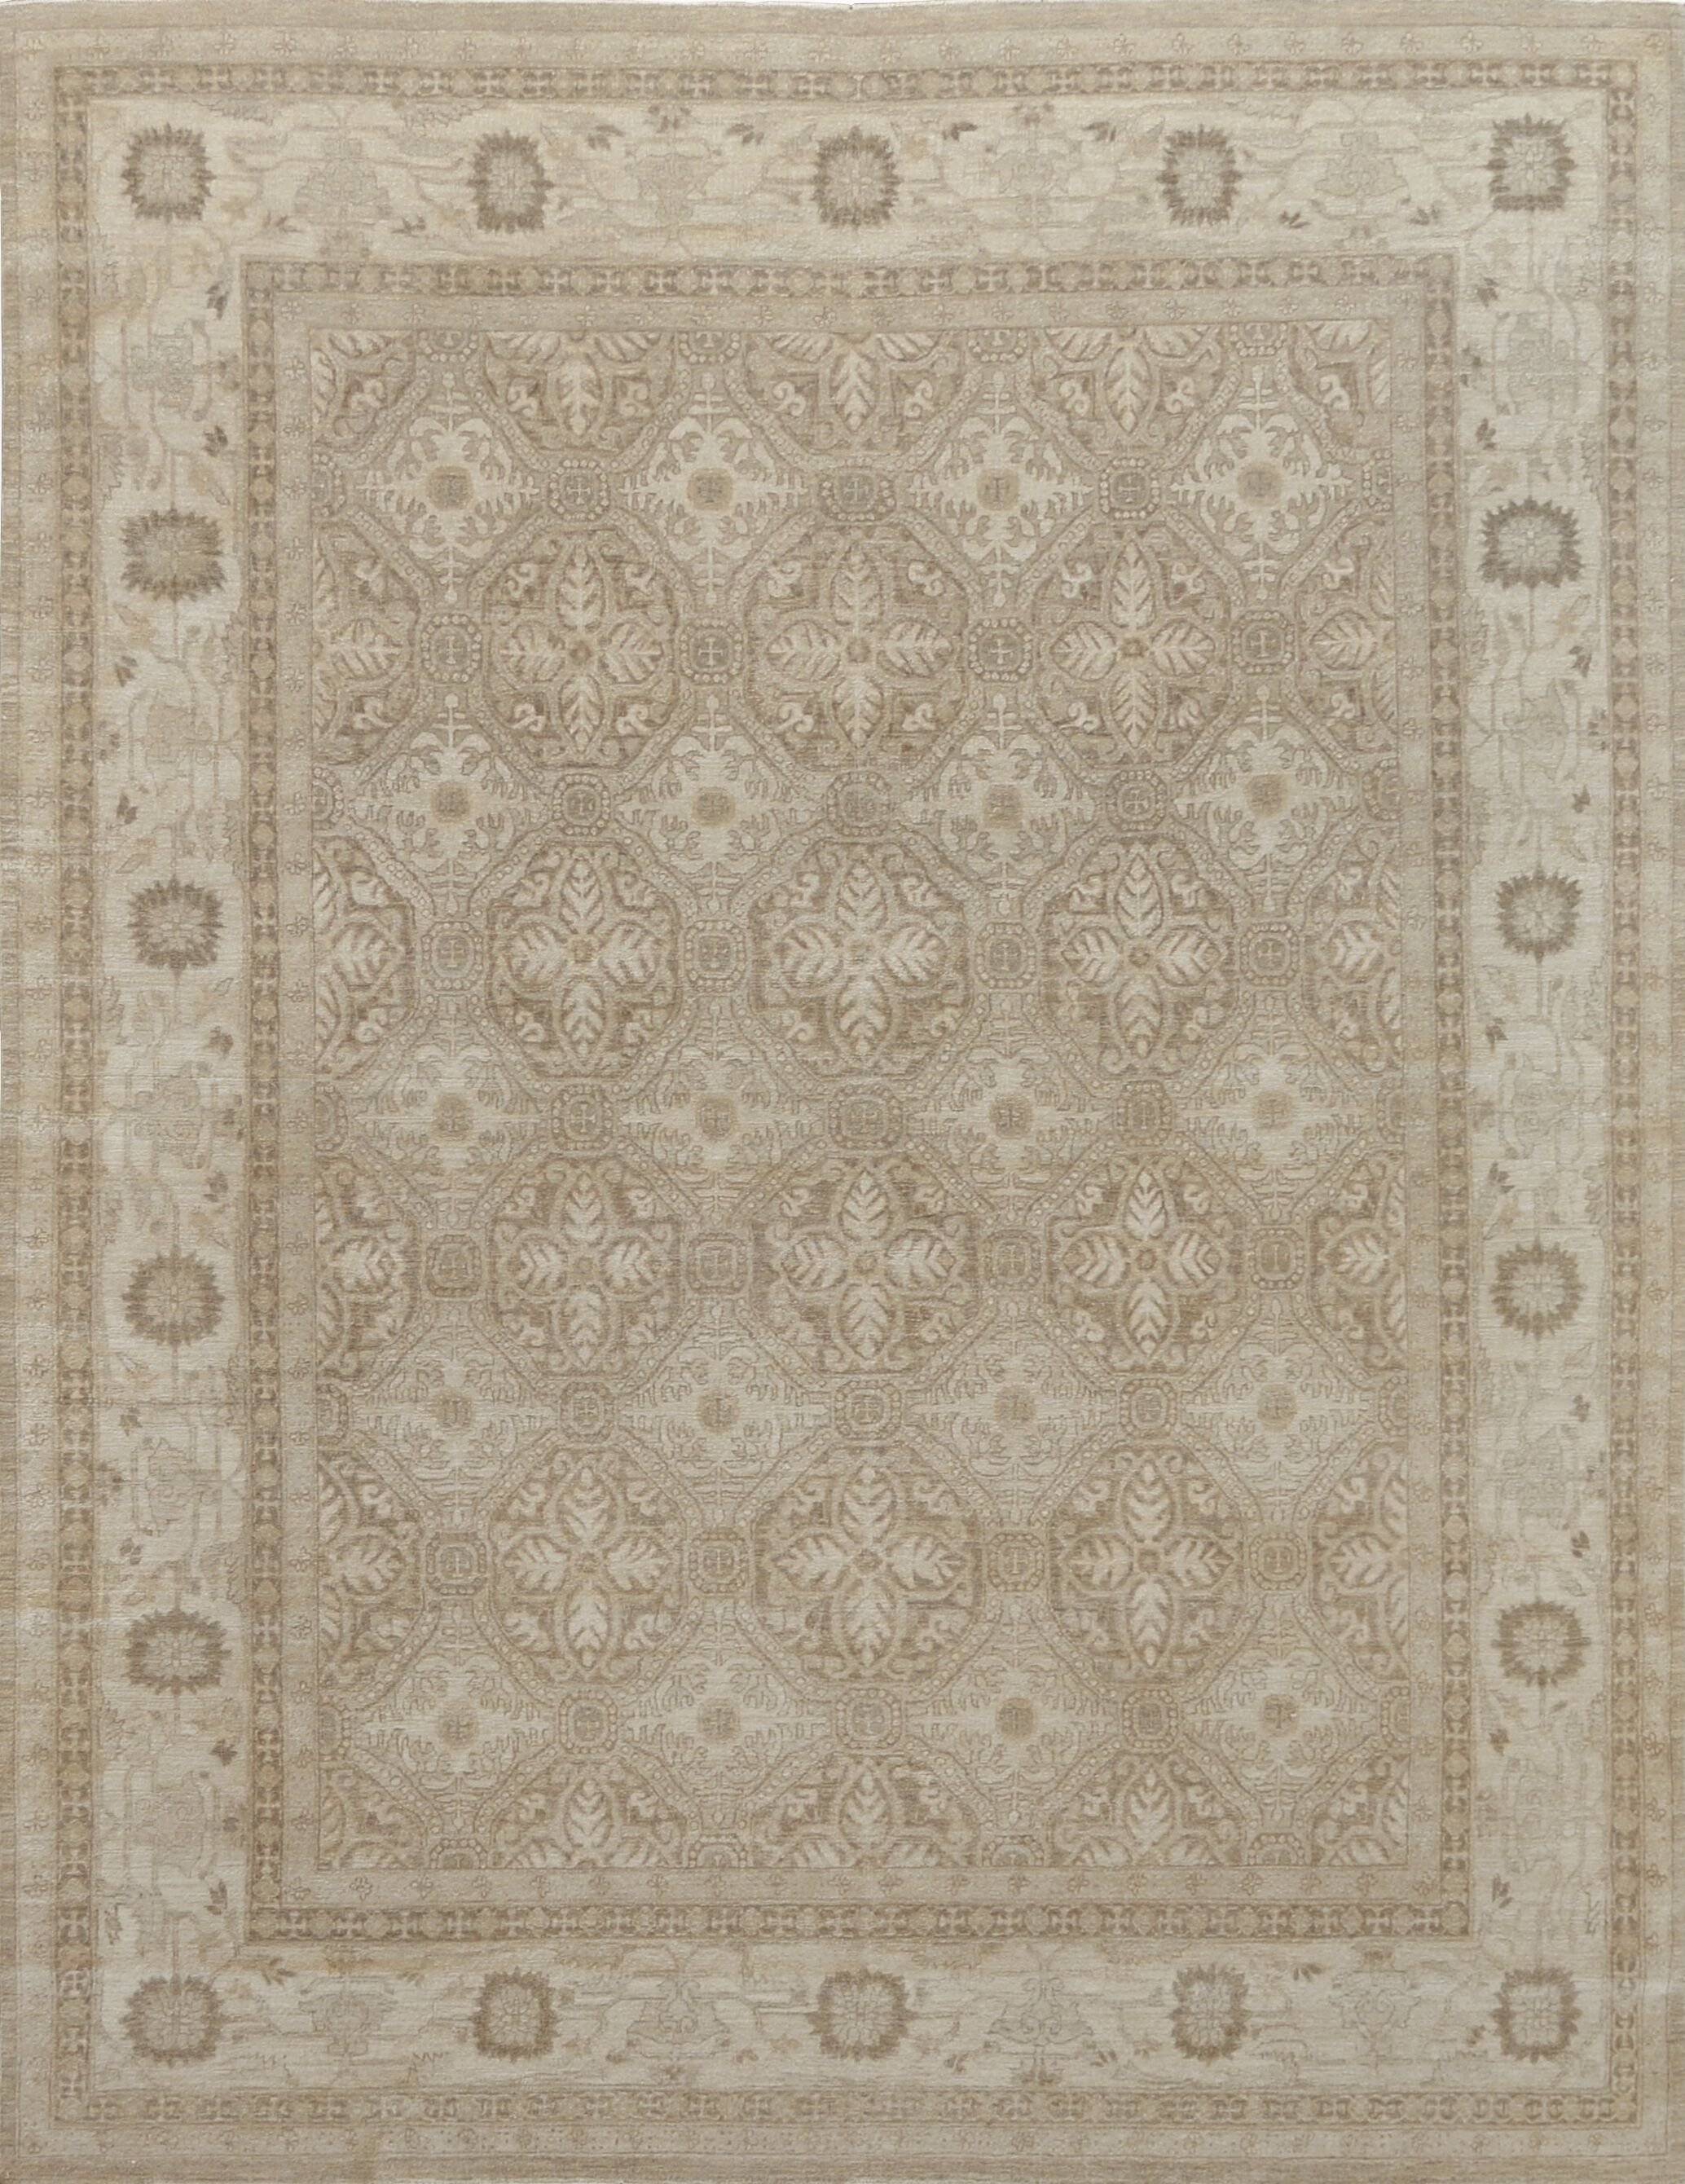 One-of-a-Kind Exceptional Handwoven Wool Brown Indoor Area Rug